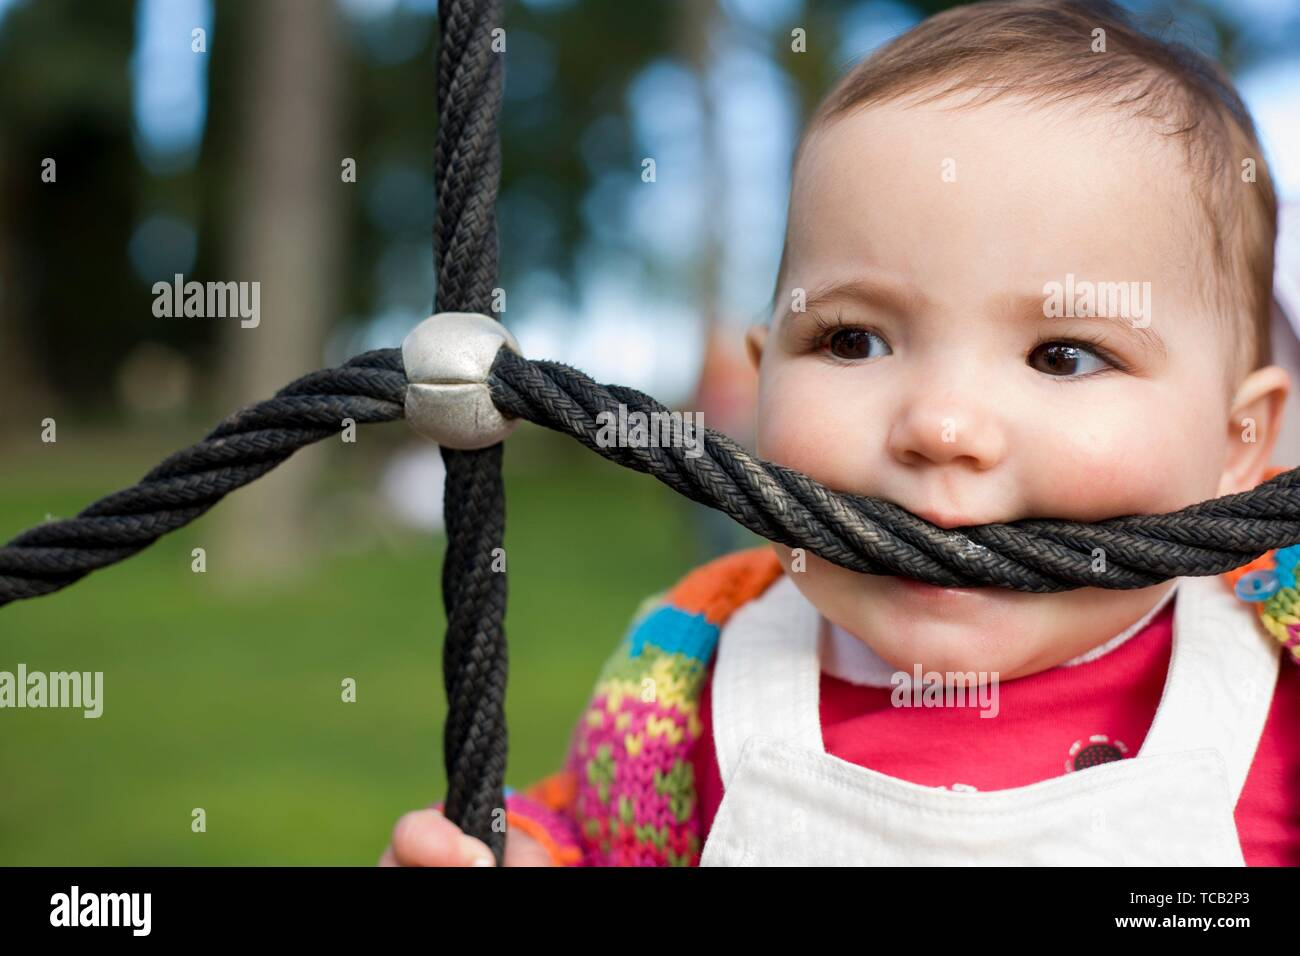 11 month baby girl bitting playground rope as it was a teether. Biting and Teething for babies concept. - Stock Image